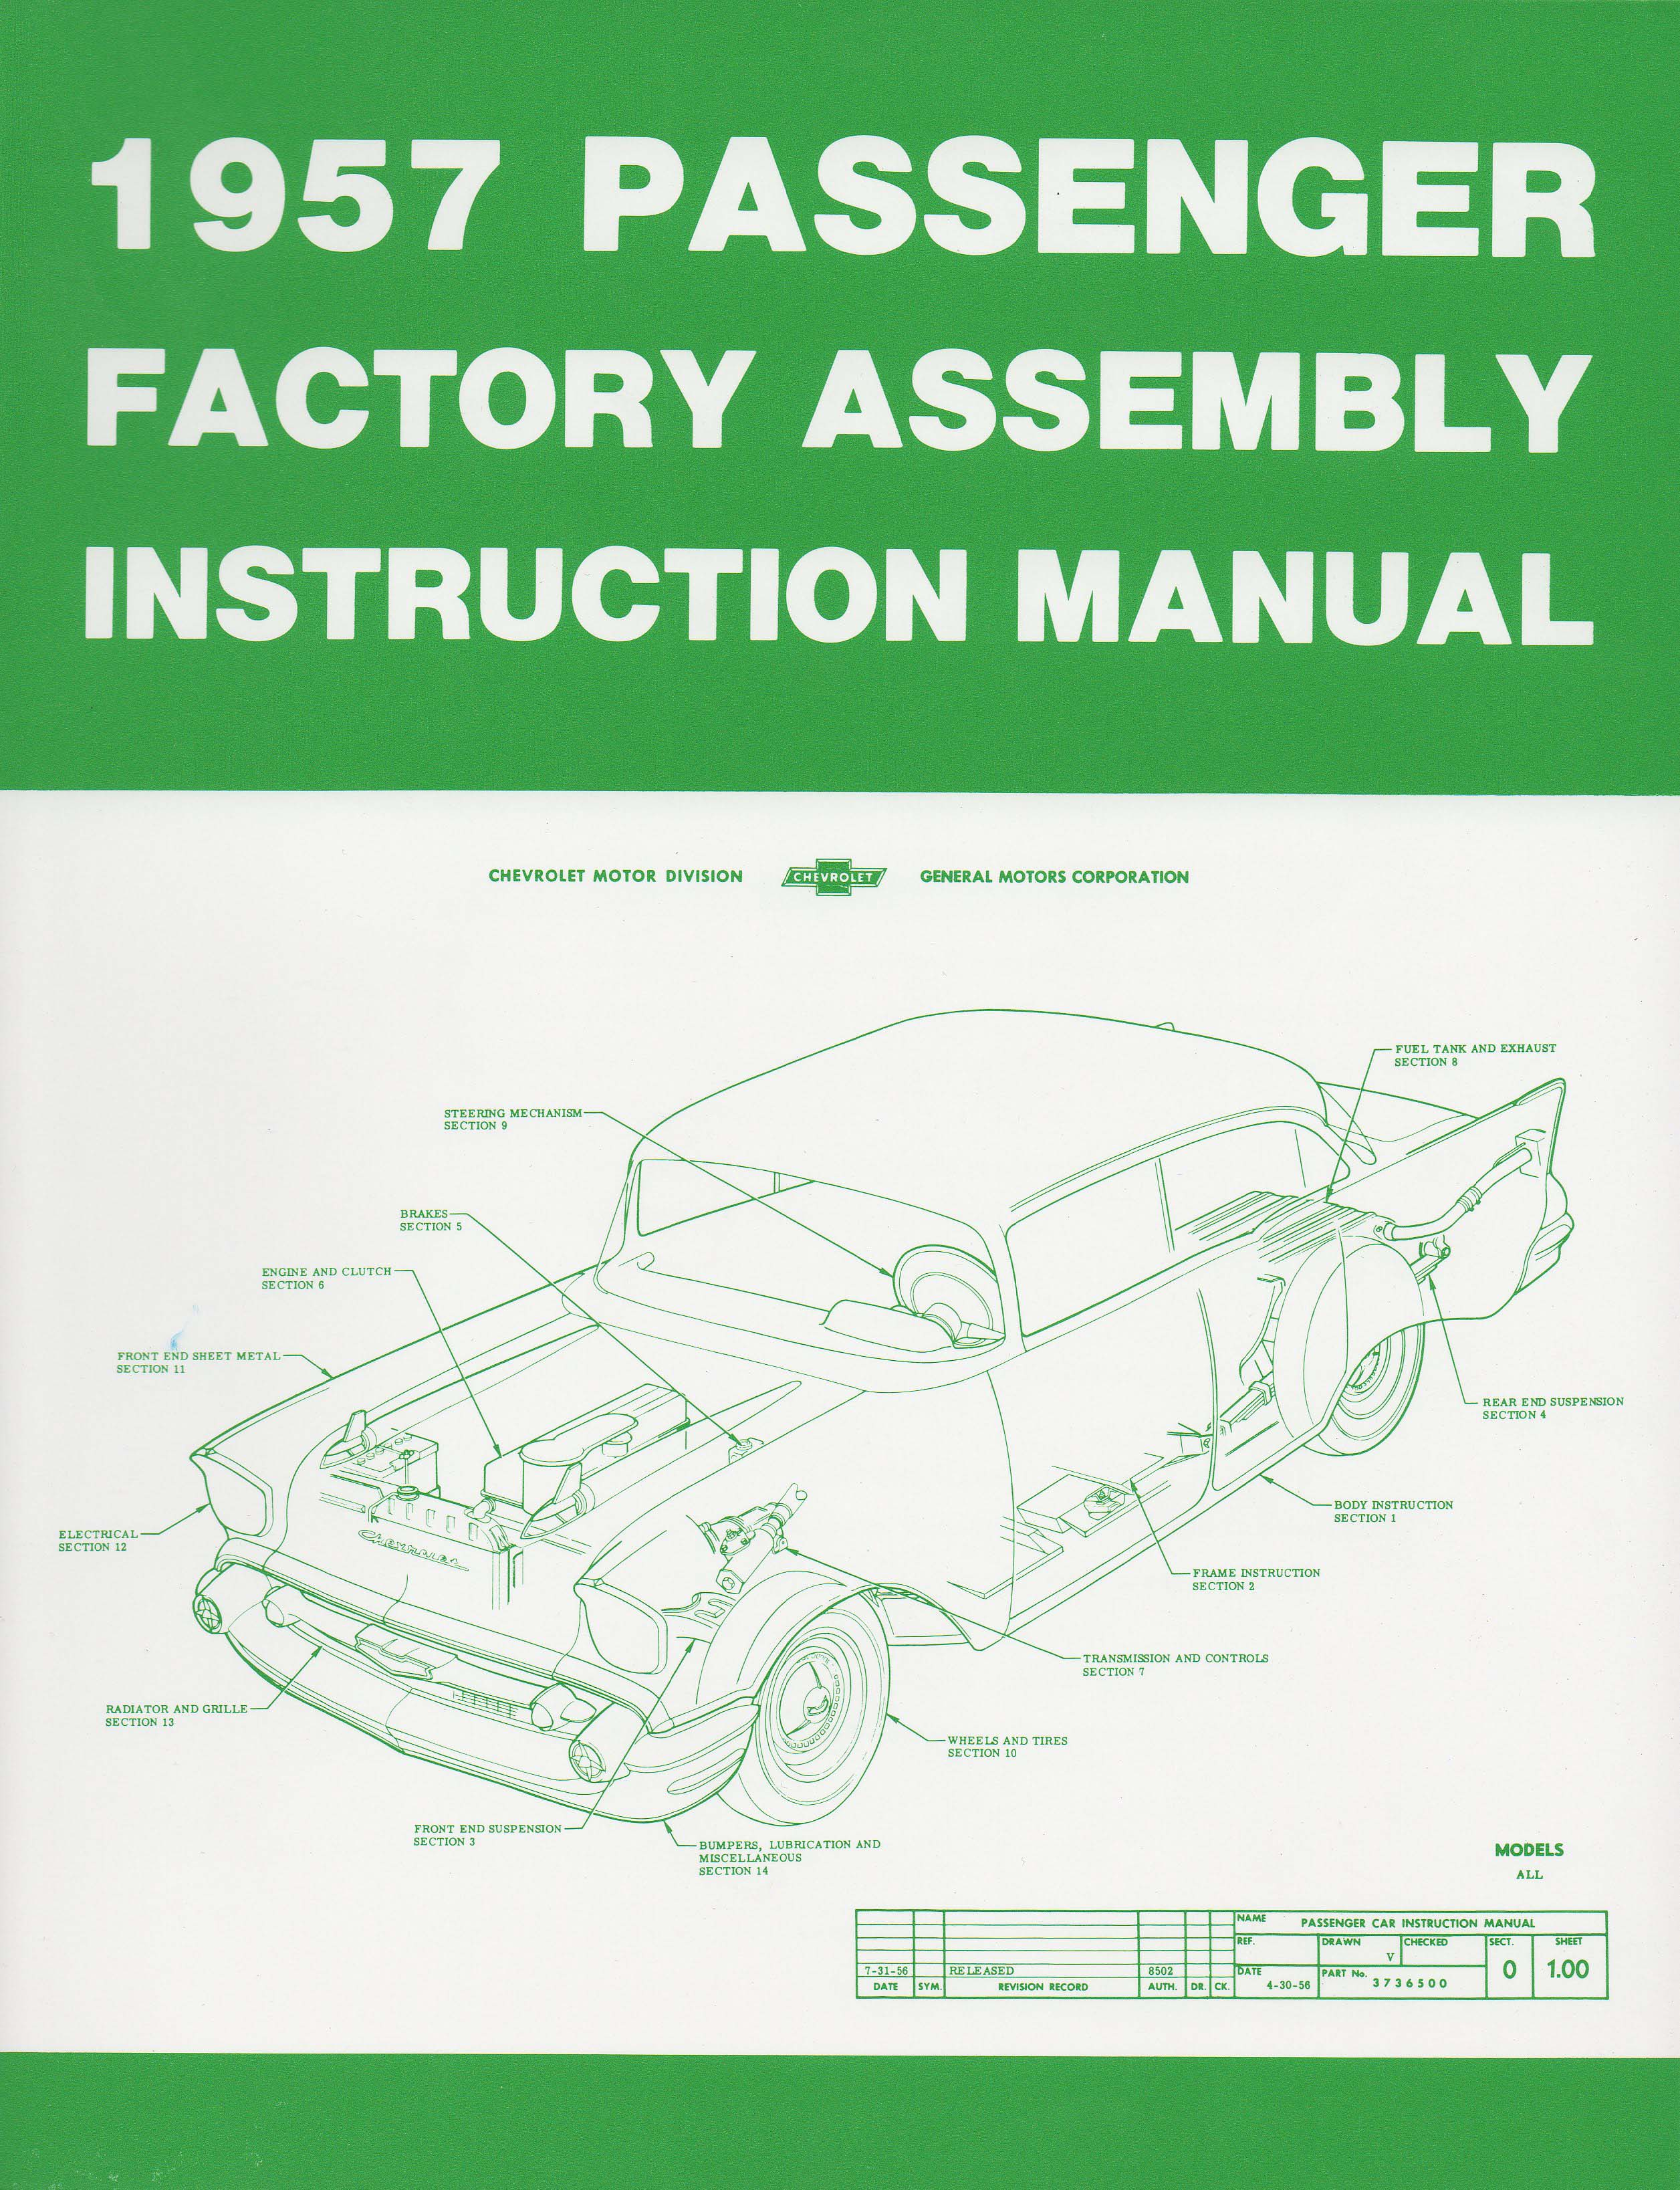 Chevrolet Assembly Manual, 1957